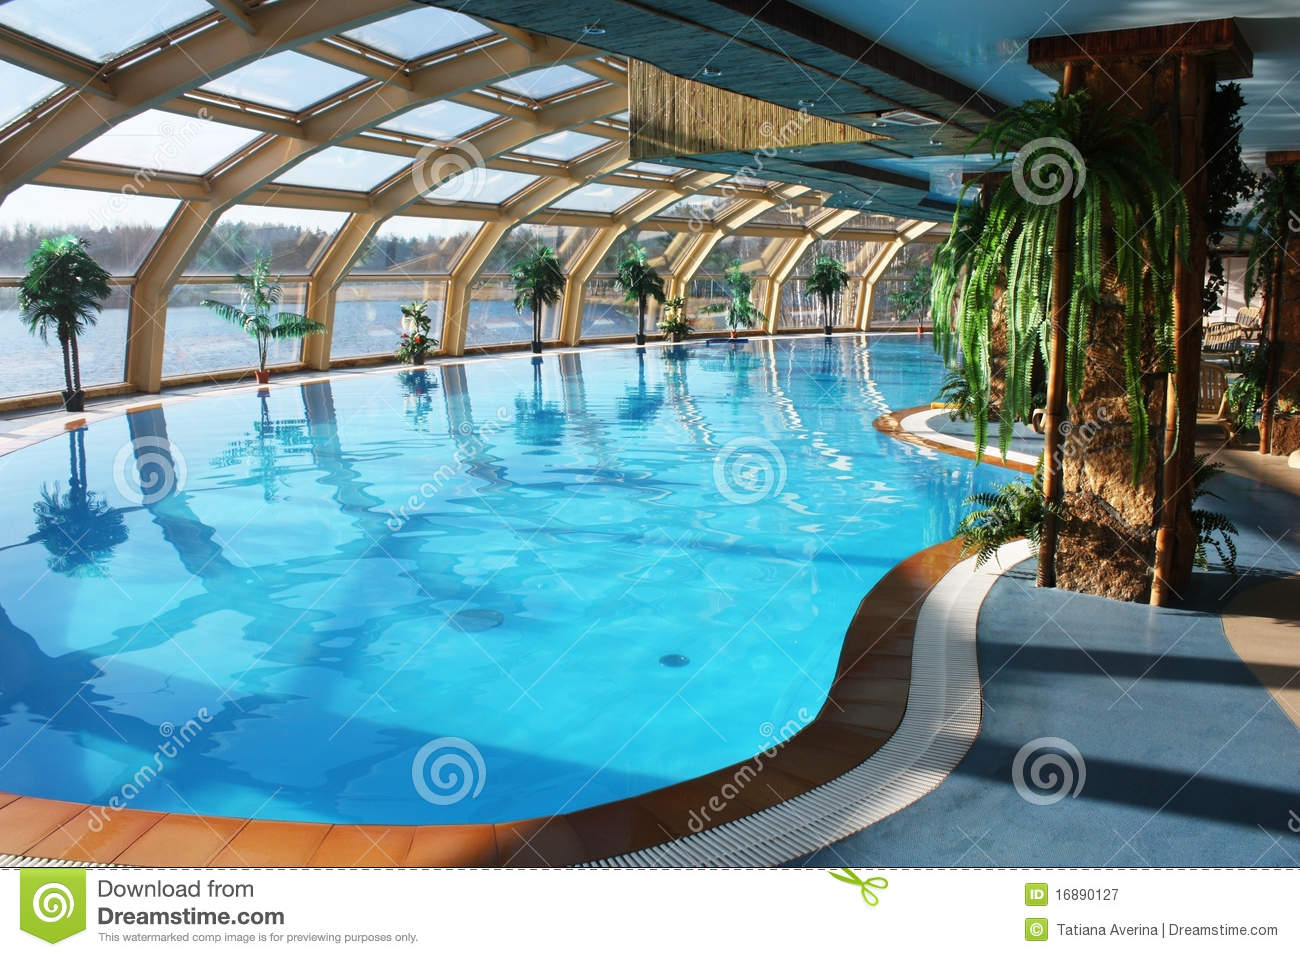 Swimming pool royalty free stock photography image 16890127 for Community swimming pools near me